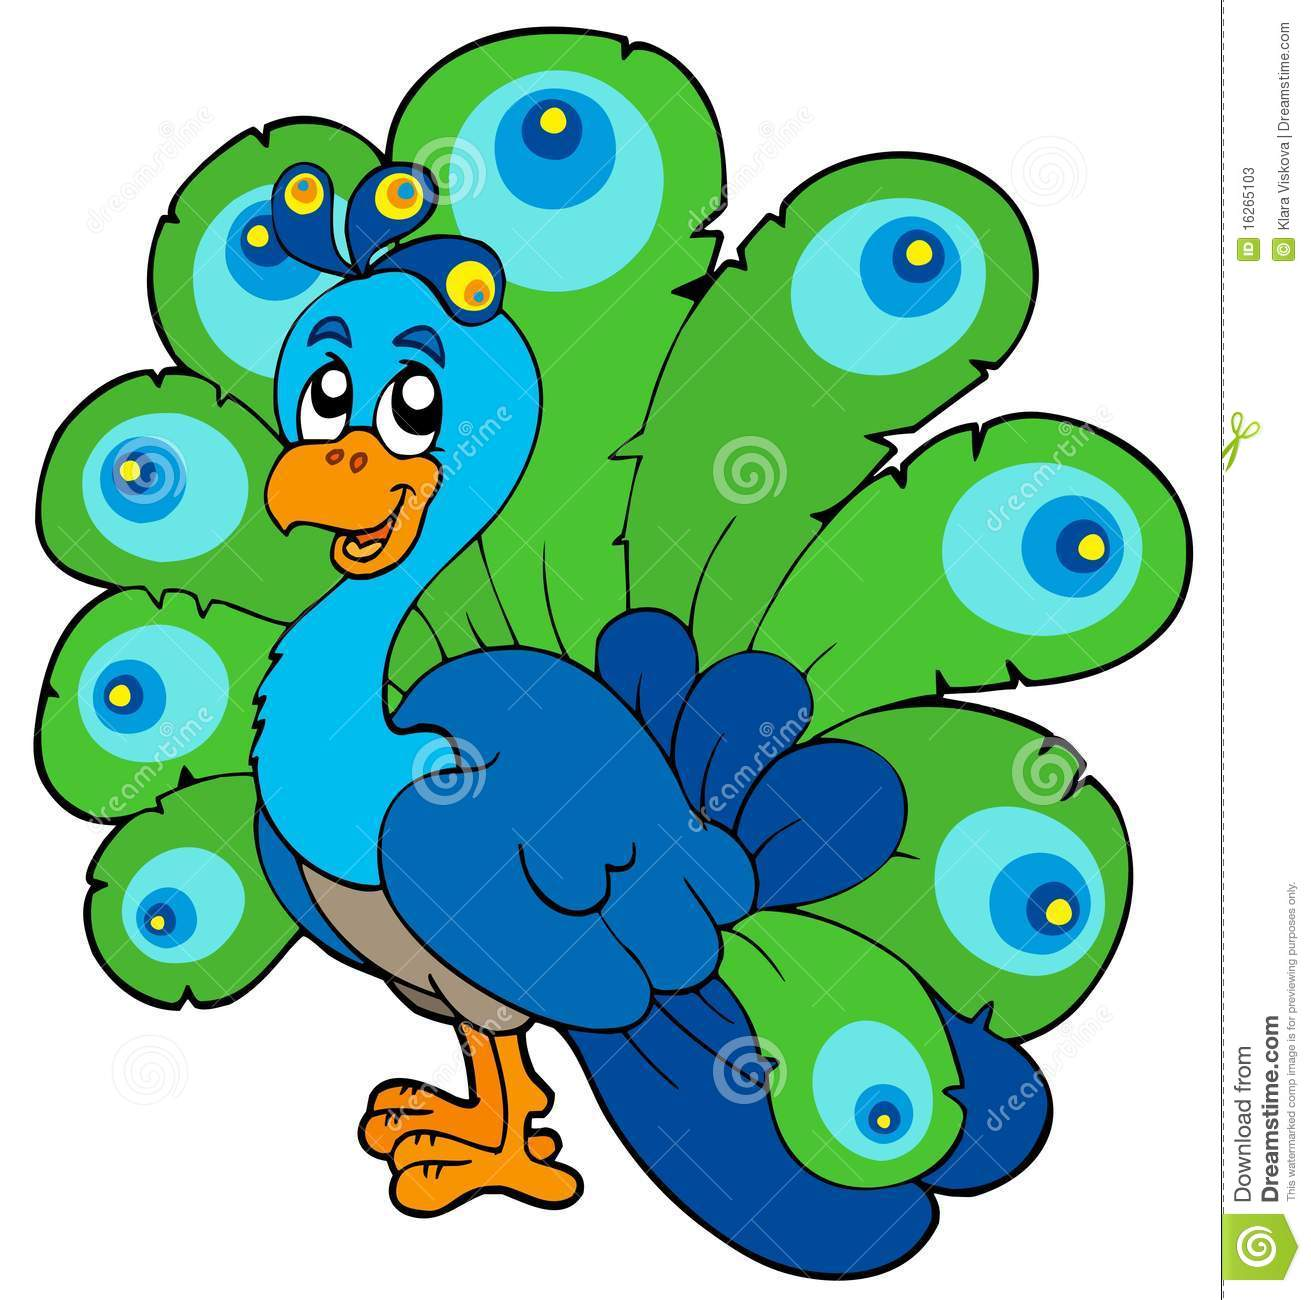 Peacock clipart #1, Download drawings